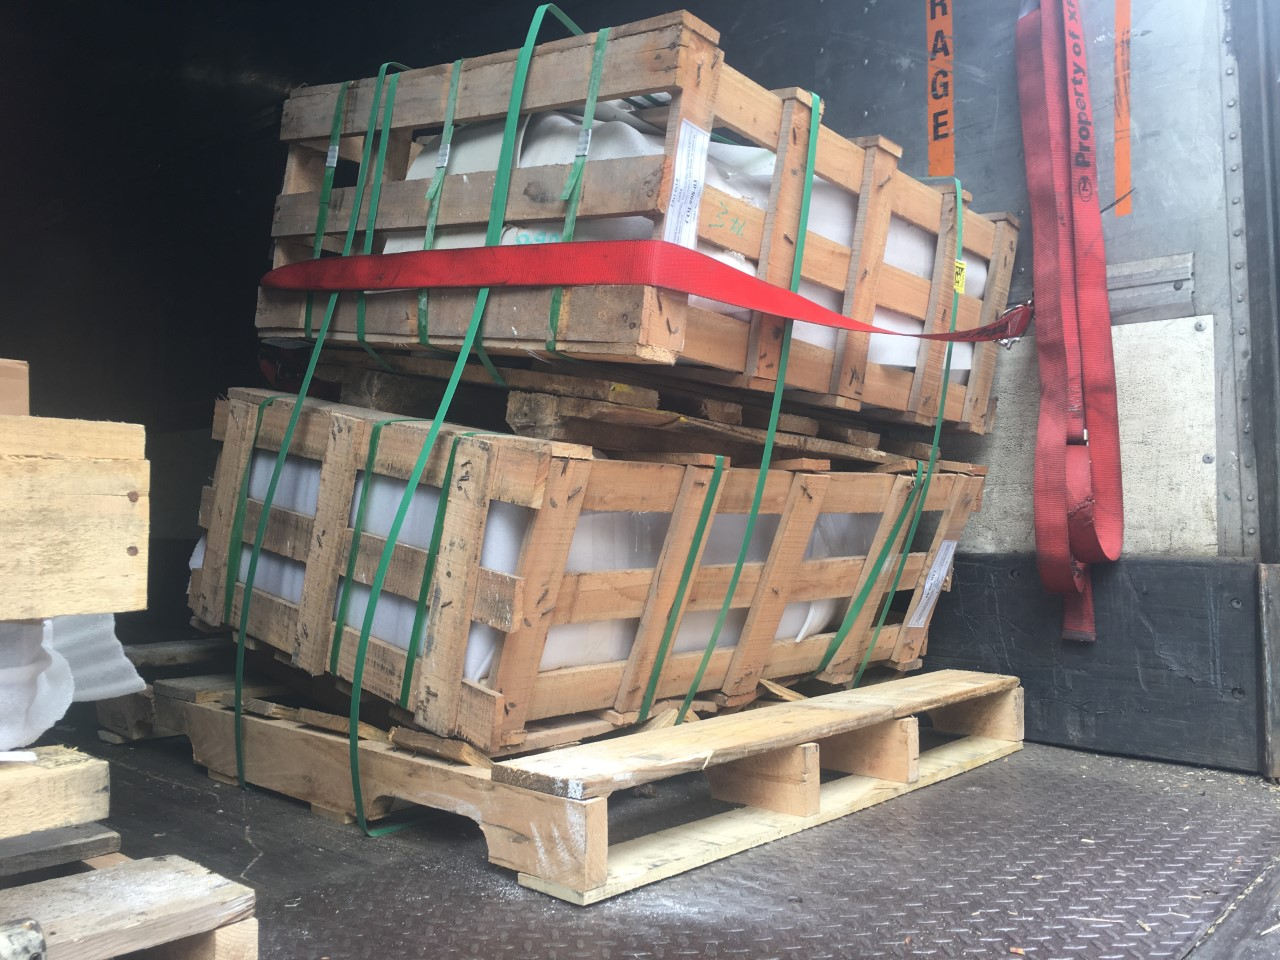 imported memorials stacked on pallettes (1)